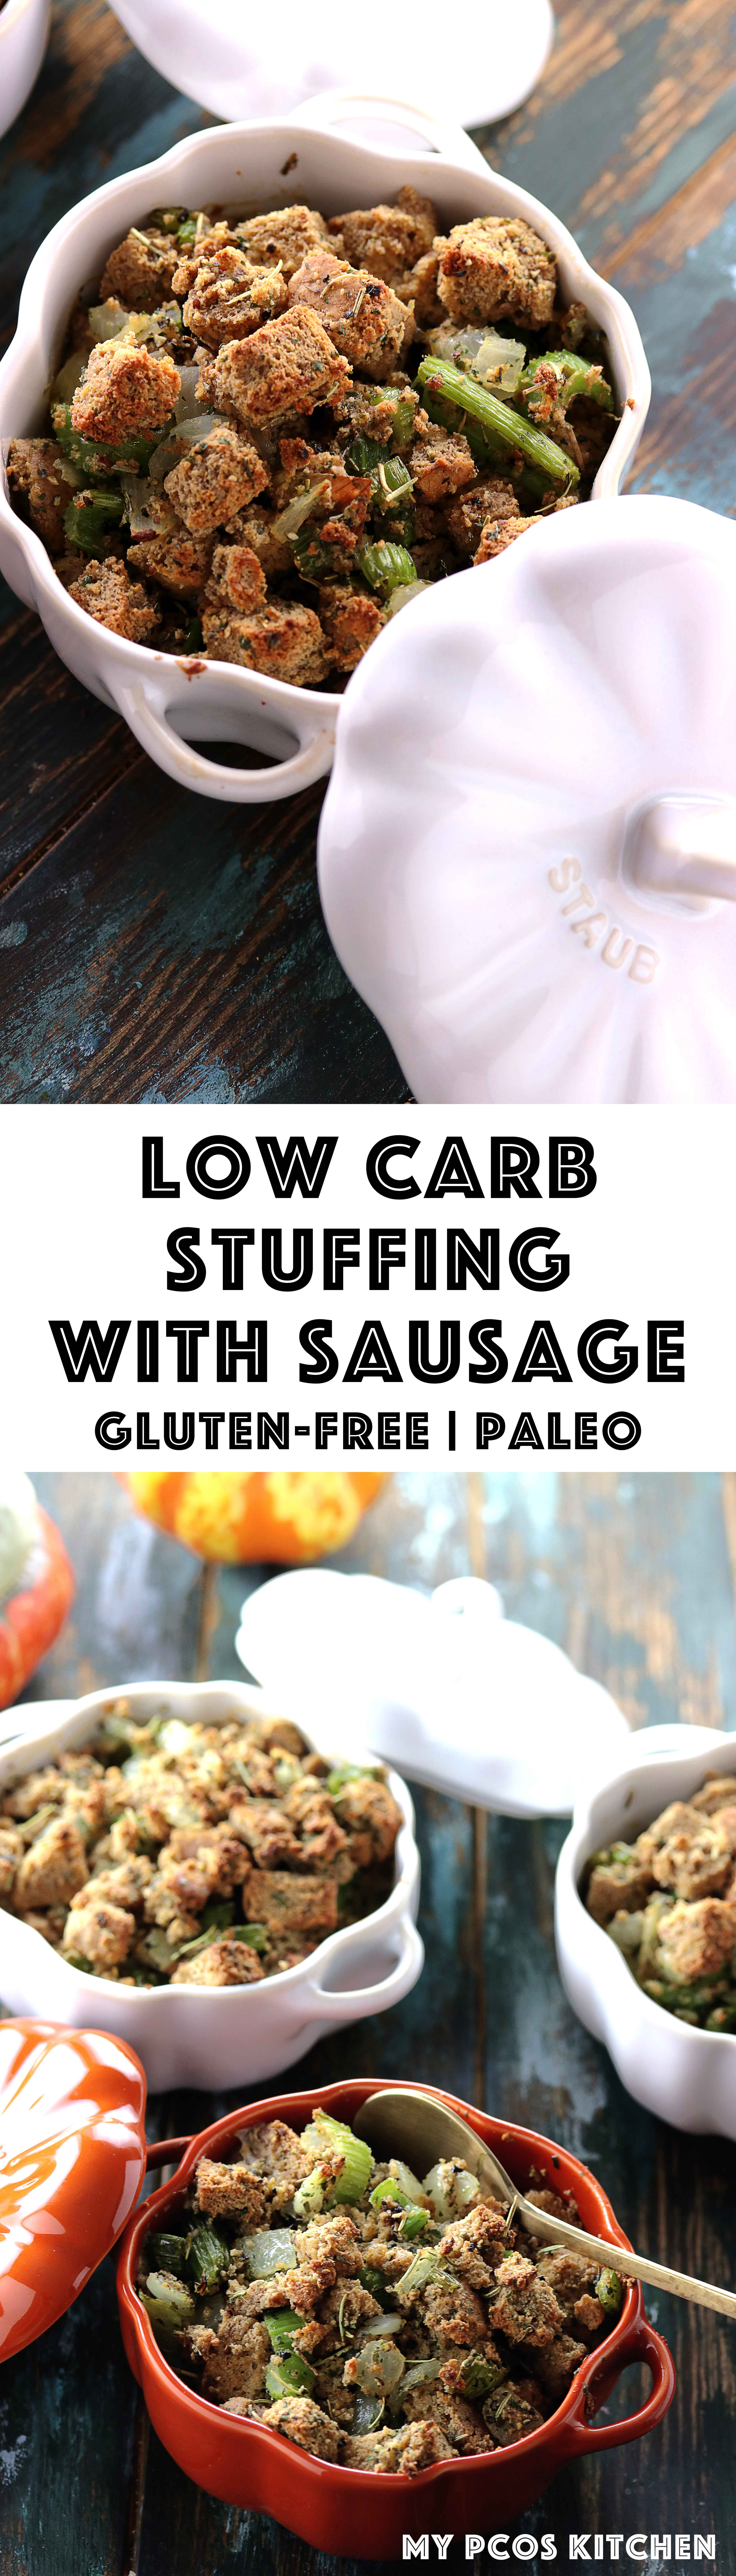 My PCOS Kitchen - Low Carb Stuffing with Paleo Bread & Sausage - An easy gluten-free and grain-free stuffing made with an almond bread. #glutenfree #paleo #lowcarb #thanksgiving